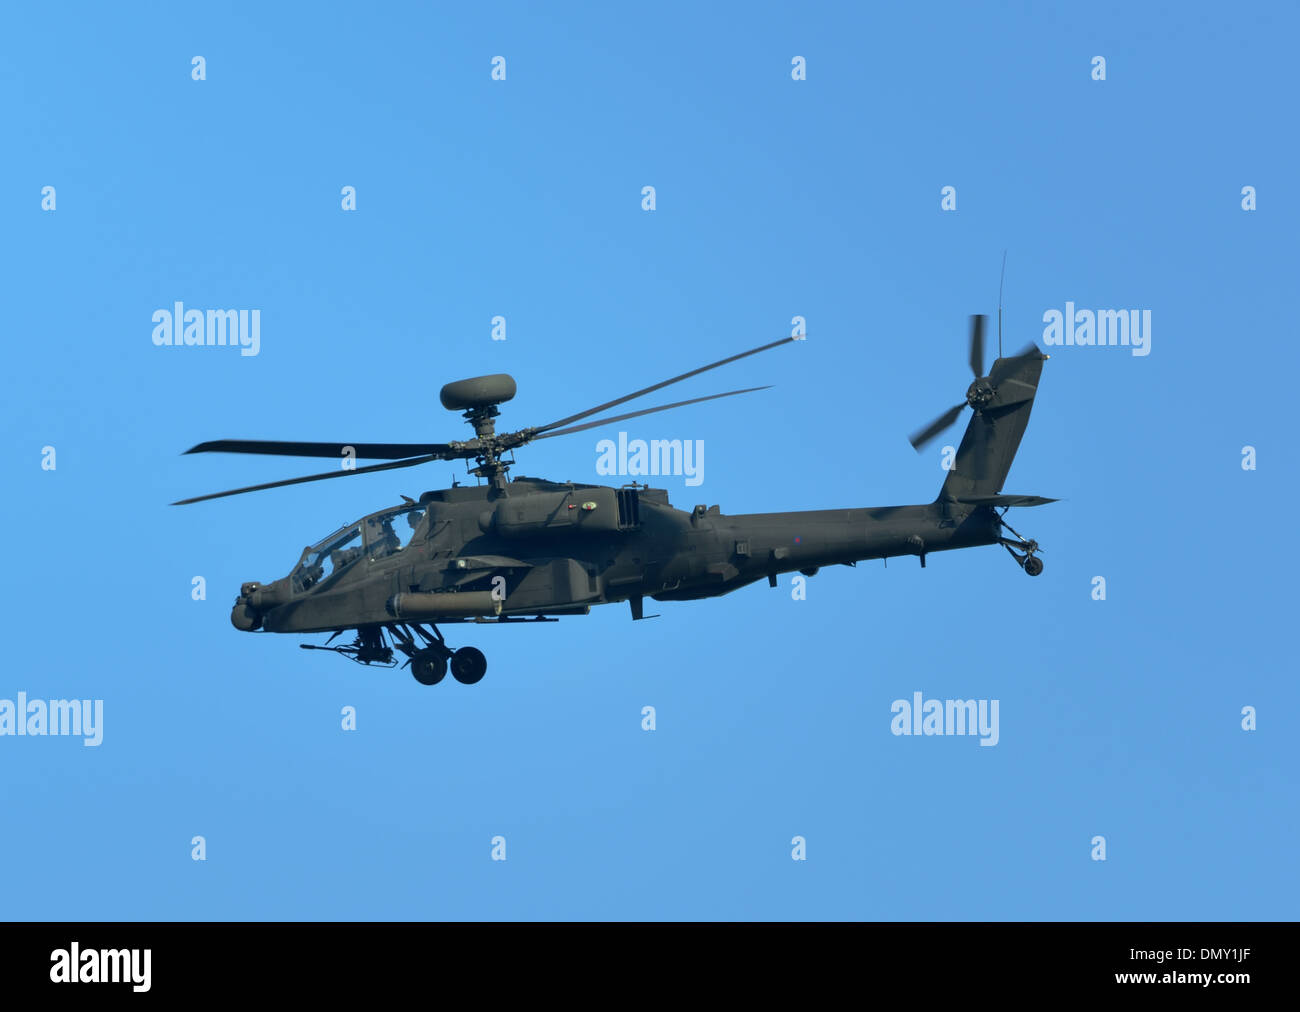 British army air corps AgustaWestland WAH-64D / Apache Longbow AH1 attack helicopter - Stock Image